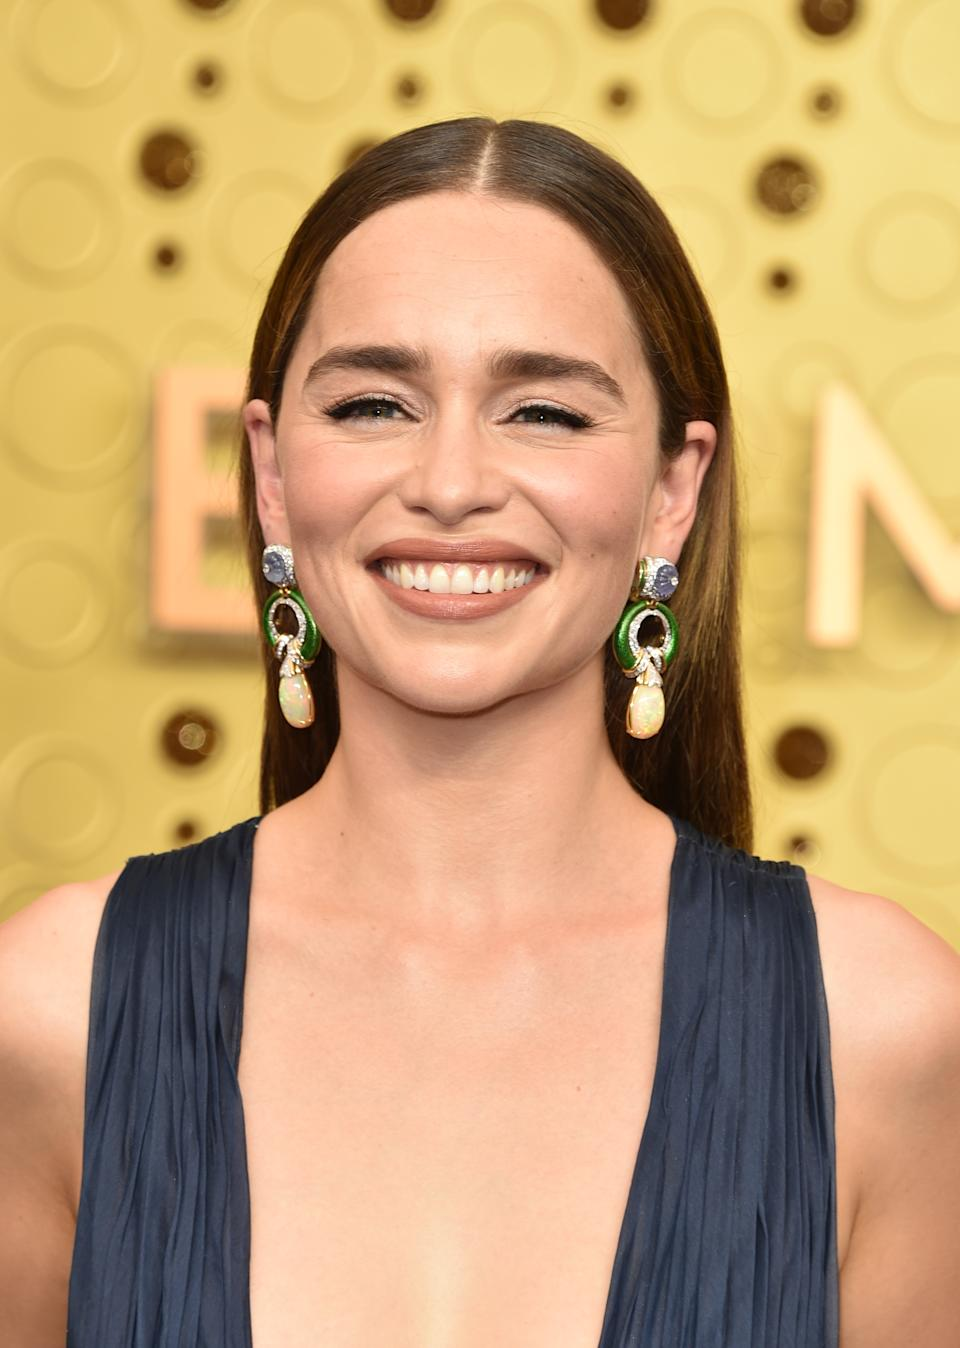 LOS ANGELES, CALIFORNIA - SEPTEMBER 22:  Emilia Clarke attends the 71st Emmy Awards at Microsoft Theater on September 22, 2019 in Los Angeles, California. (Photo by John Shearer/Getty Images)